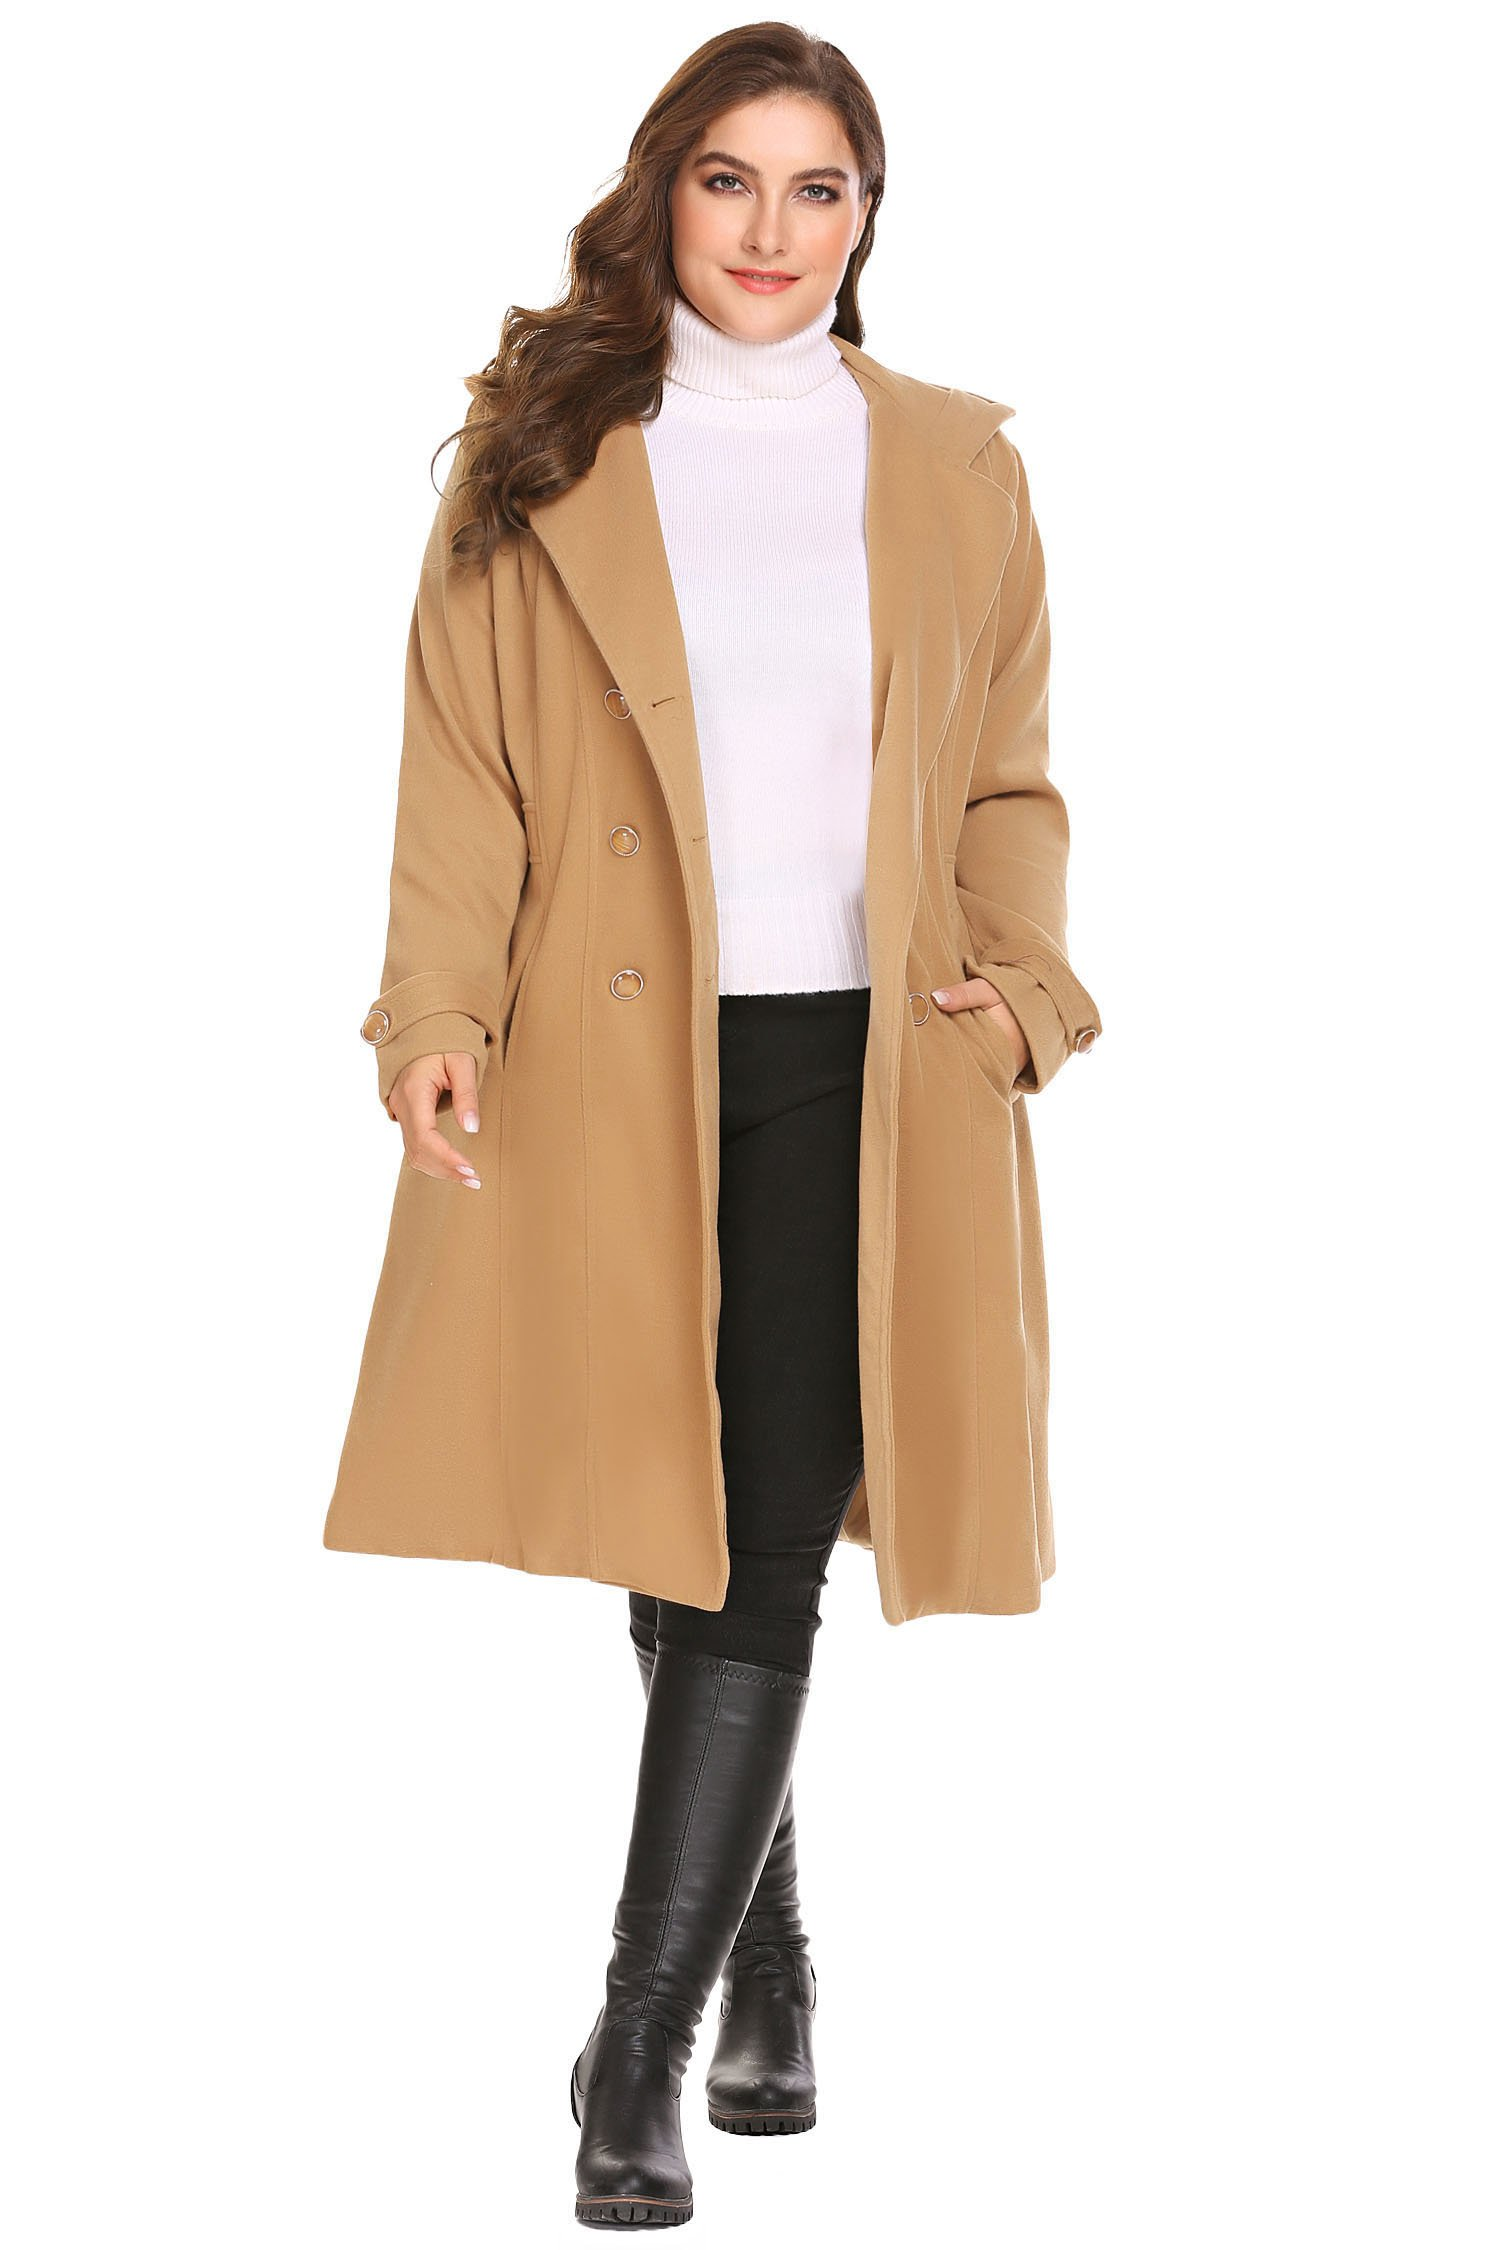 Zeagoo Women Plus Size Double Breasted Wool Elegant Long Lined Lightweight Trench Coat (16W-24W) by Zeagoo (Image #2)